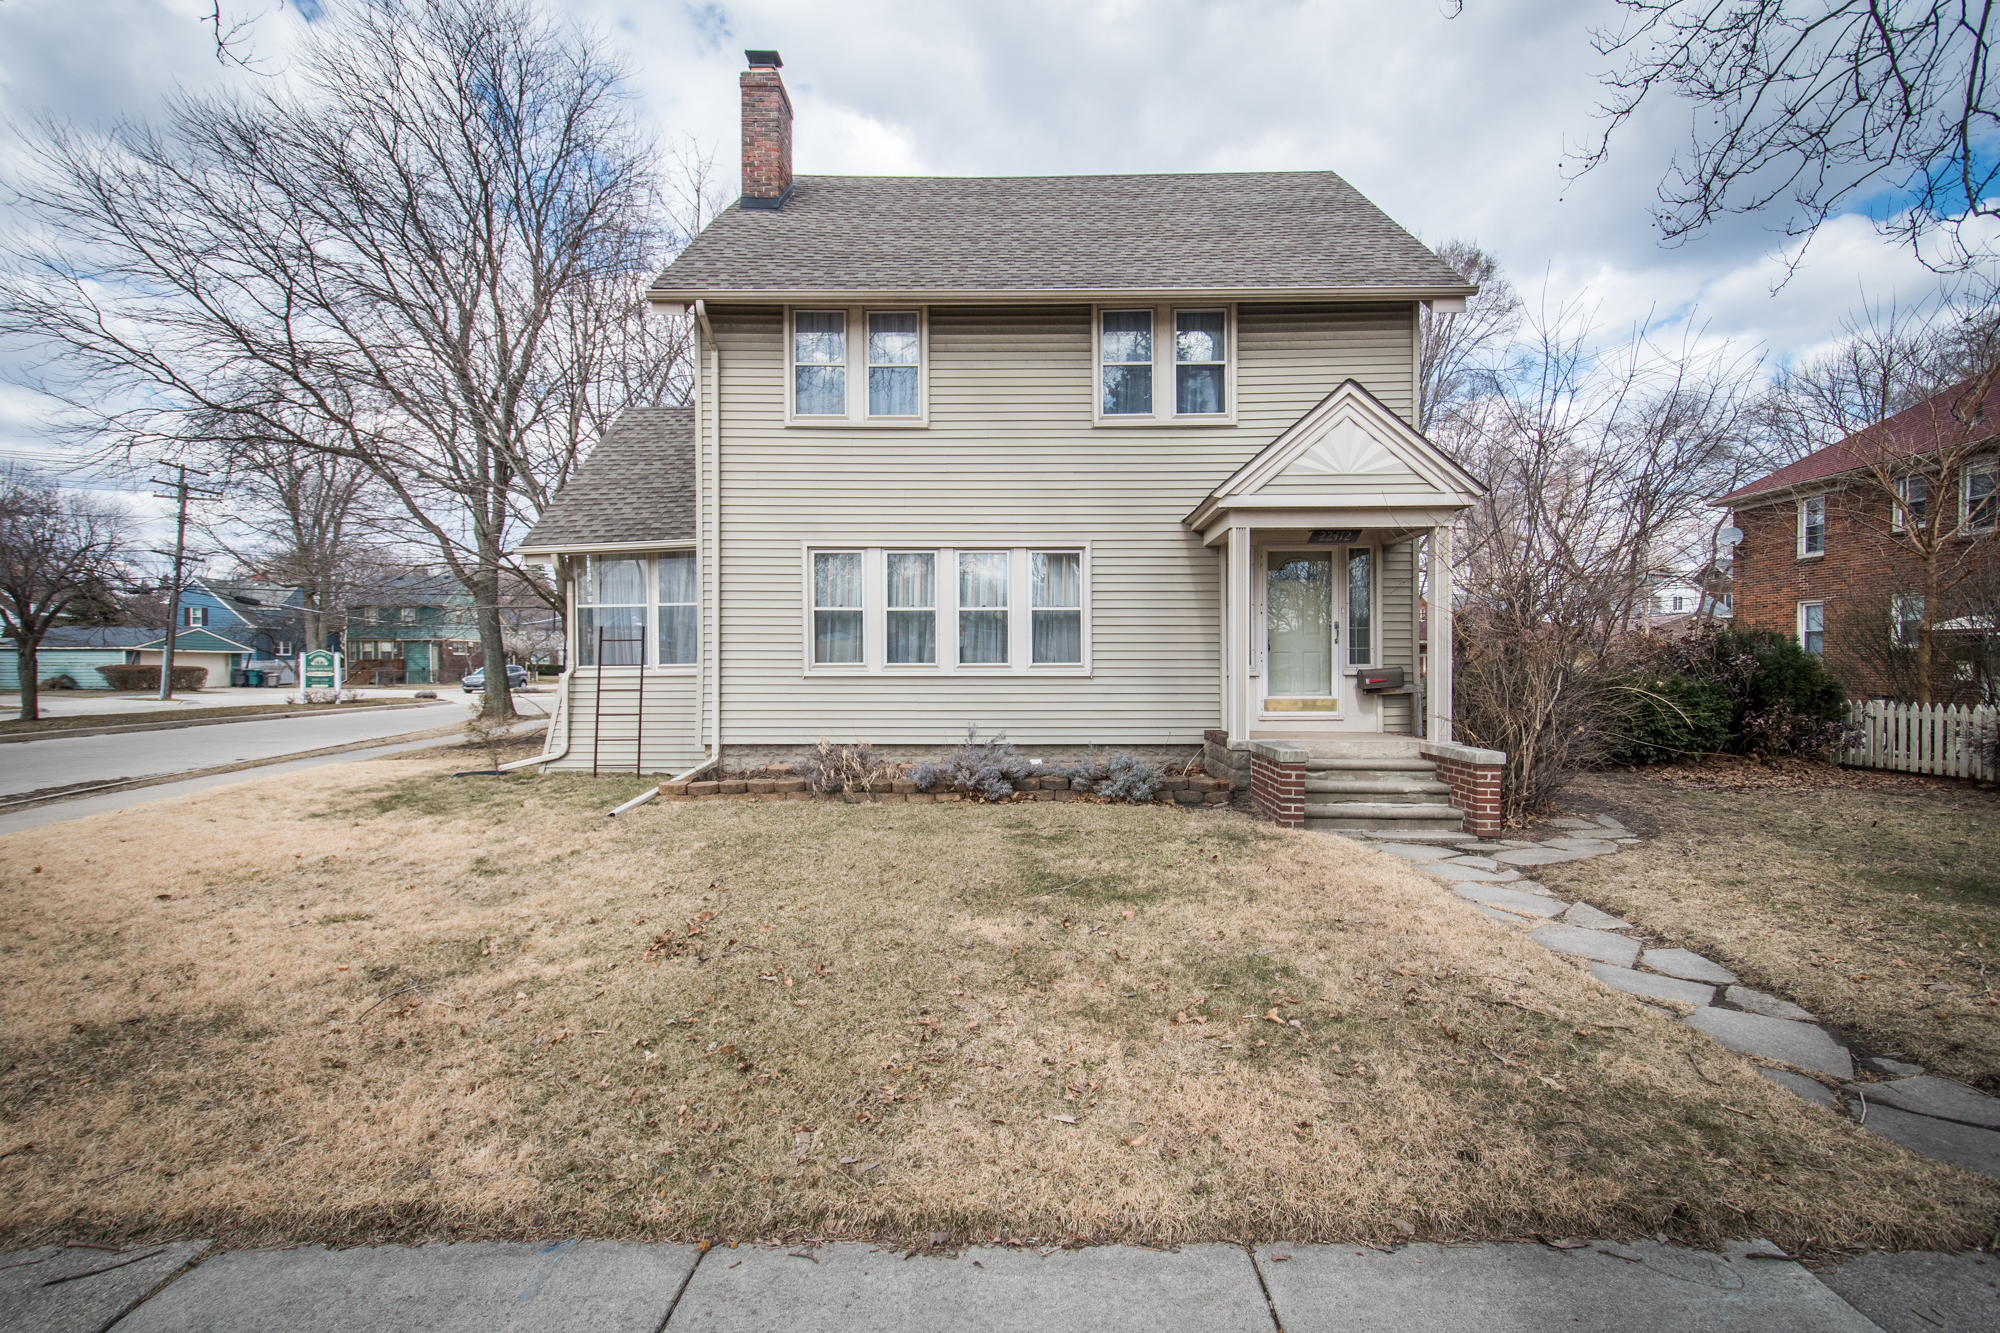 Beech Street, Dearborn - $215,000   DOM 6 / Sold for 98% of asking price / 7 Showings